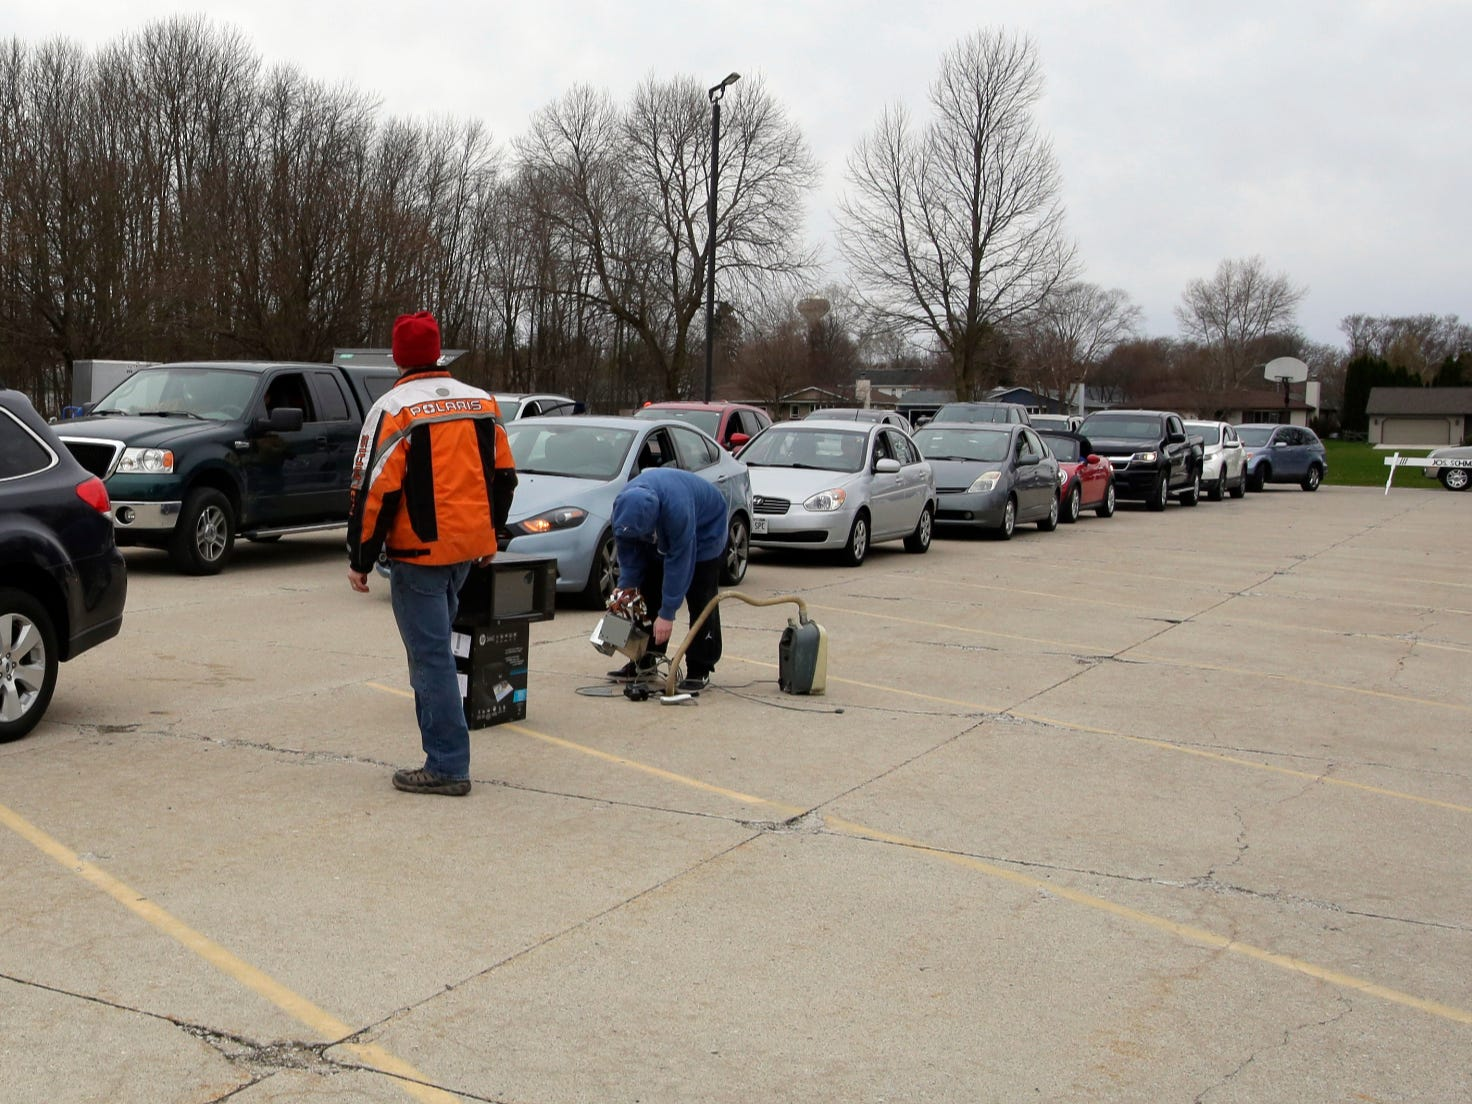 Electronics to be recycled are taken out of vehicles during a recycling event at Ebenezer United Church of Christ, Saturday, April 27, 2019, in Sheboygan, Wis.